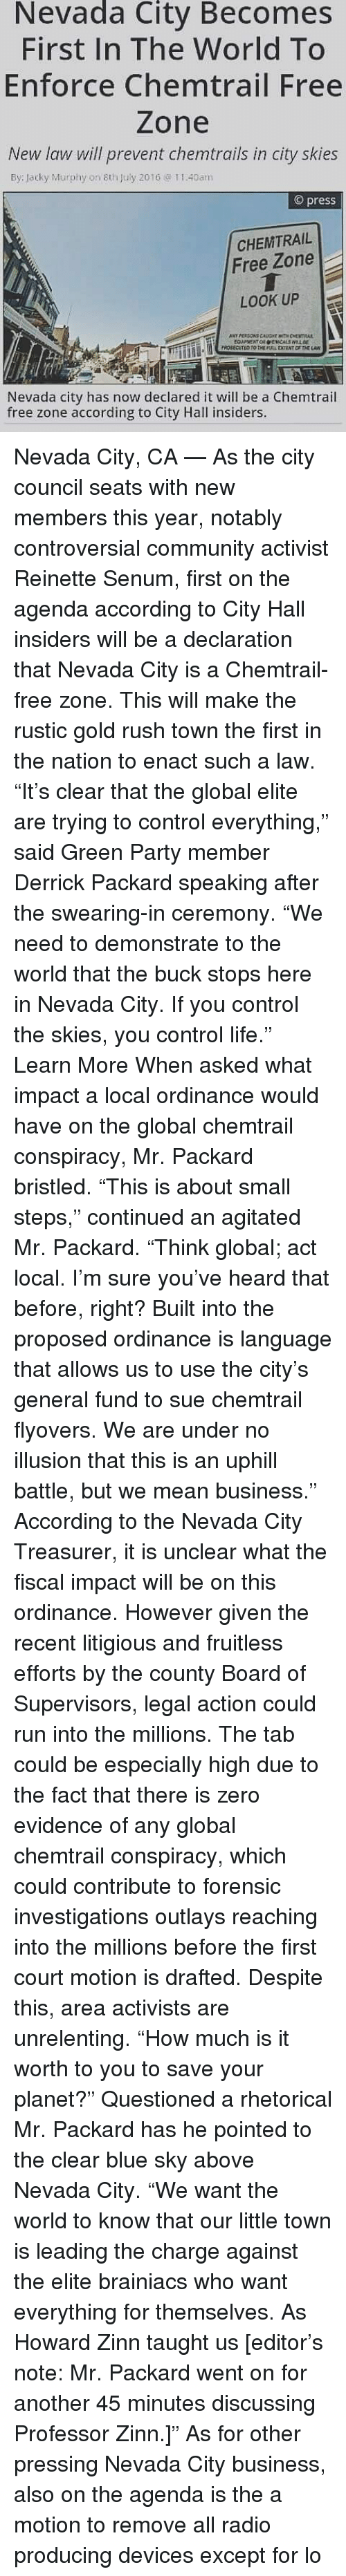 """ordinance: Nevada  City Becomes  First In The World To  Enforce Chemtrail Free  Zone  New law will prevent chemtrails in city skies  By: lacky Murphy on 8th July 2016 40am  © press  CHEMTRAIL  Free Zone  LOOK UP  ANY PERSON CAUGHT WITH OHt  Nevada city has now declared it will be a Chemtrail  free zone according to City Hall insiders. Nevada City, CA — As the city council seats with new members this year, notably controversial community activist Reinette Senum, first on the agenda according to City Hall insiders will be a declaration that Nevada City is a Chemtrail-free zone. This will make the rustic gold rush town the first in the nation to enact such a law. """"It's clear that the global elite are trying to control everything,"""" said Green Party member Derrick Packard speaking after the swearing-in ceremony. """"We need to demonstrate to the world that the buck stops here in Nevada City. If you control the skies, you control life."""" Learn More When asked what impact a local ordinance would have on the global chemtrail conspiracy, Mr. Packard bristled. """"This is about small steps,"""" continued an agitated Mr. Packard. """"Think global; act local. I'm sure you've heard that before, right? Built into the proposed ordinance is language that allows us to use the city's general fund to sue chemtrail flyovers. We are under no illusion that this is an uphill battle, but we mean business."""" According to the Nevada City Treasurer, it is unclear what the fiscal impact will be on this ordinance. However given the recent litigious and fruitless efforts by the county Board of Supervisors, legal action could run into the millions. The tab could be especially high due to the fact that there is zero evidence of any global chemtrail conspiracy, which could contribute to forensic investigations outlays reaching into the millions before the first court motion is drafted. Despite this, area activists are unrelenting. """"How much is it worth to you to save your planet?"""" Questioned a rhetorical Mr. Pac"""